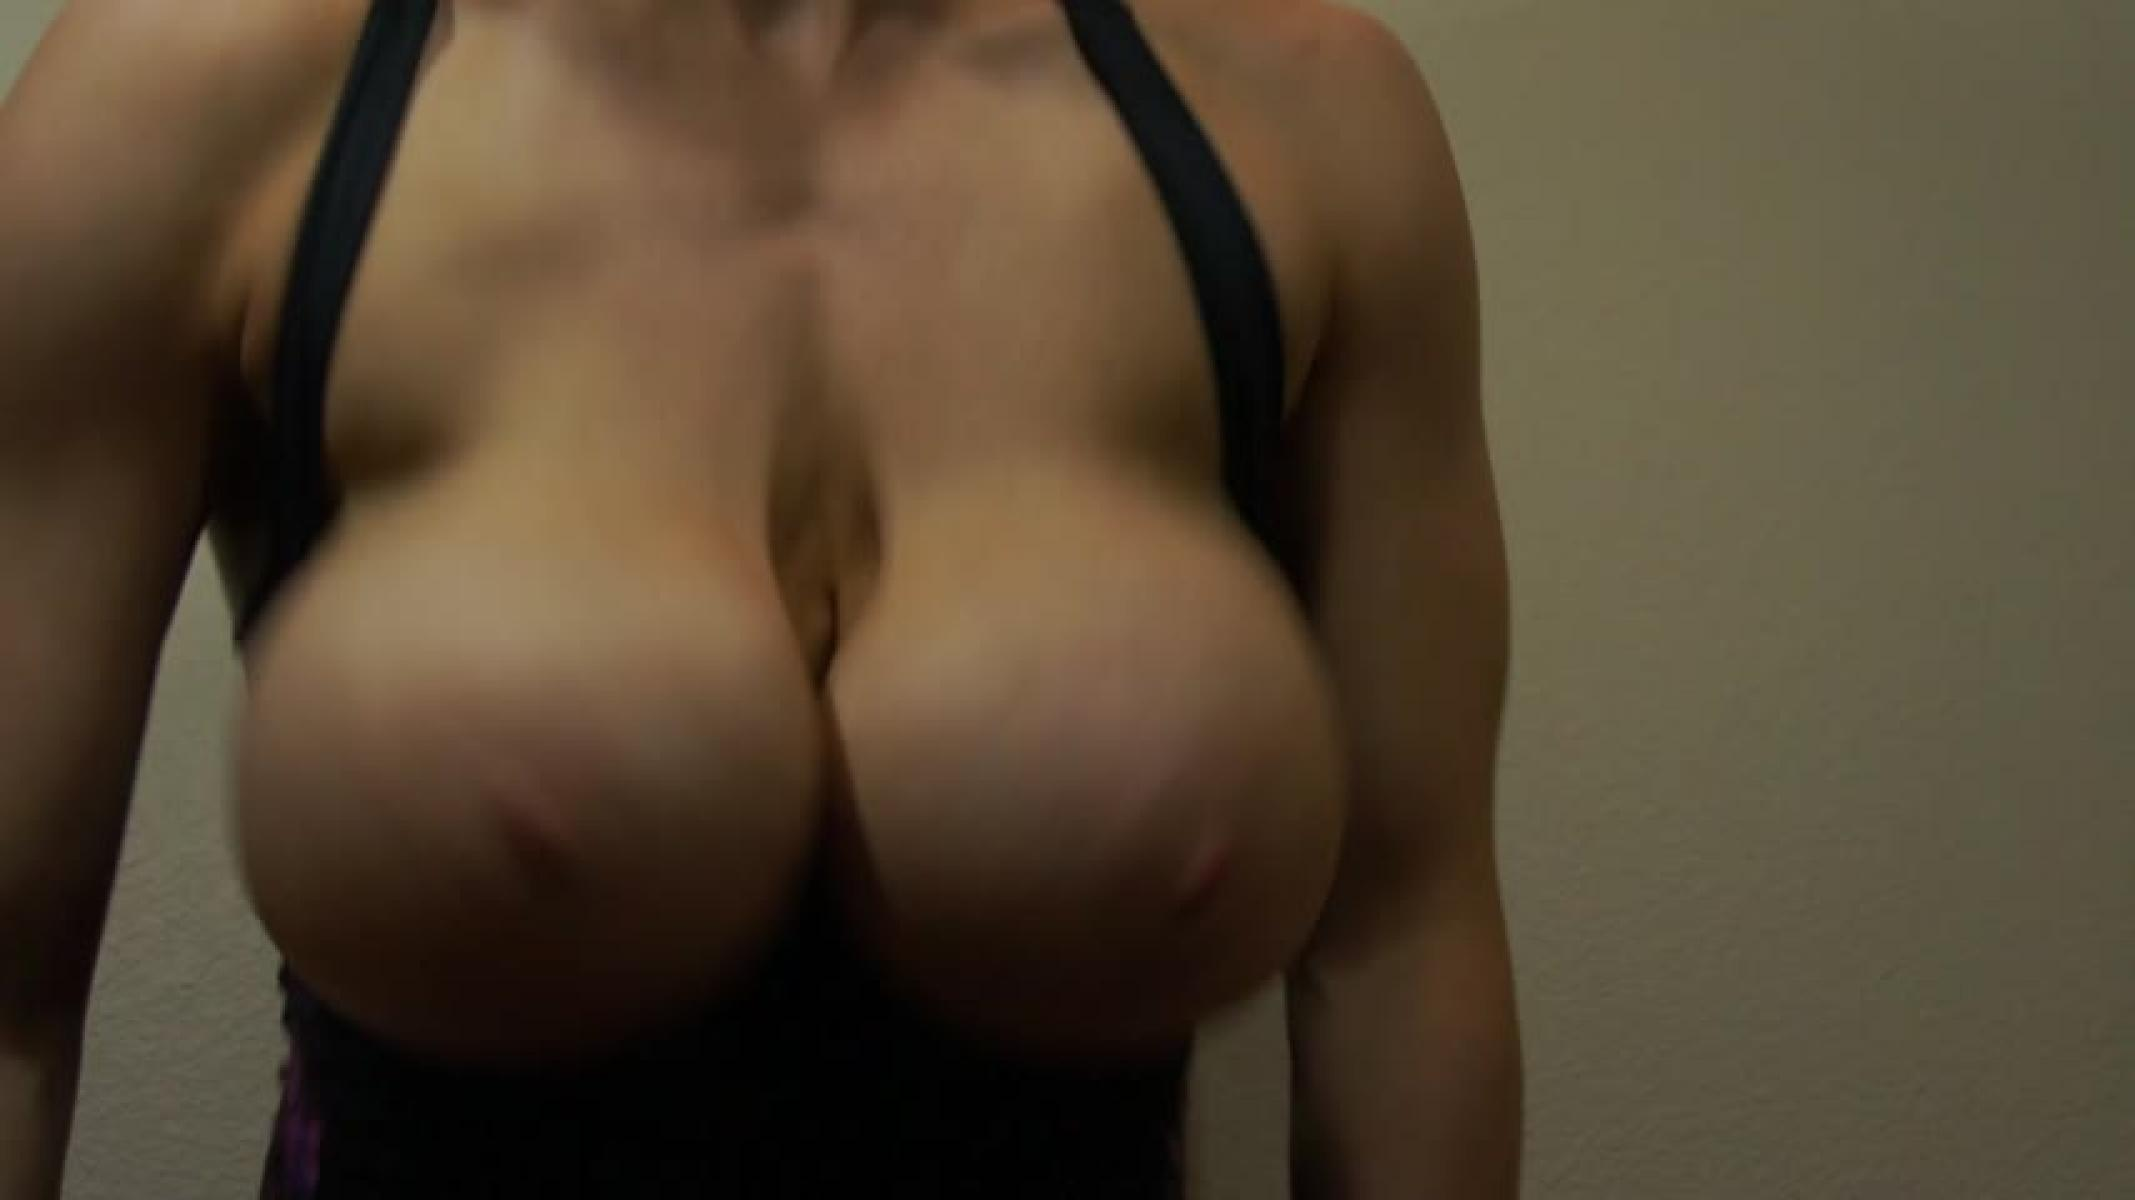 boobs-clapping-video-lady-next-door-porn